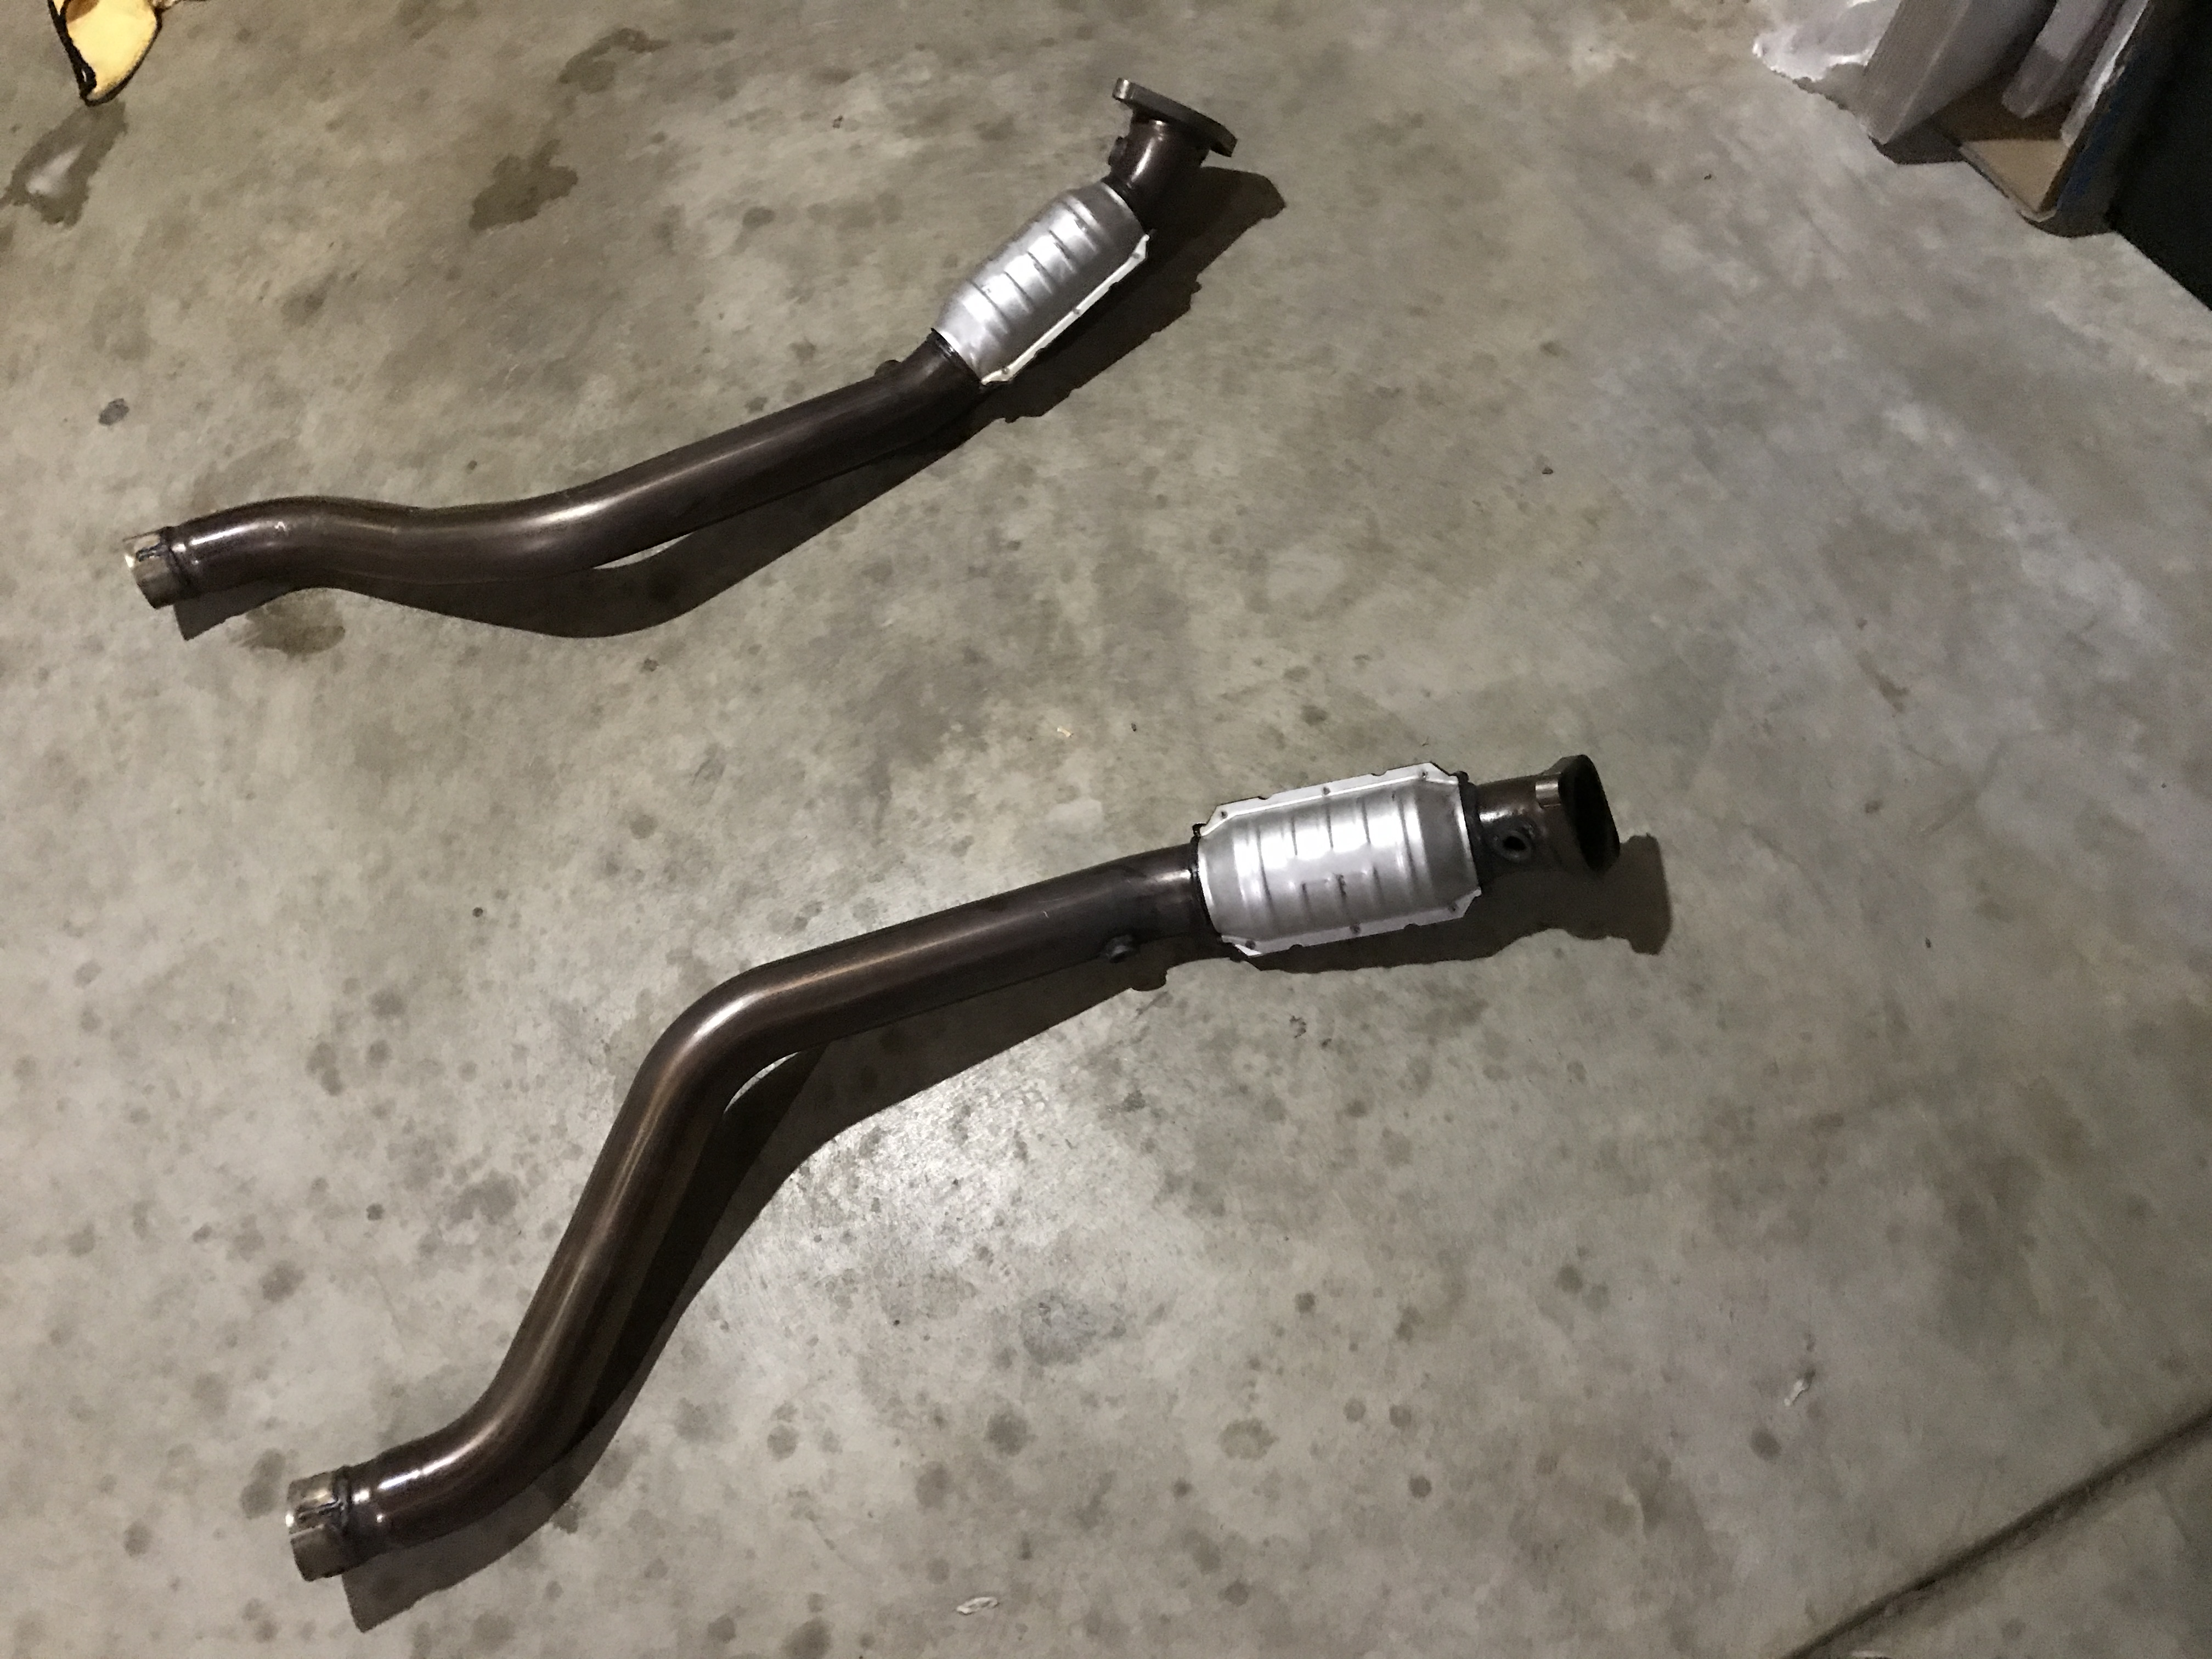 Magnaflow catted mid pipes for sale Used